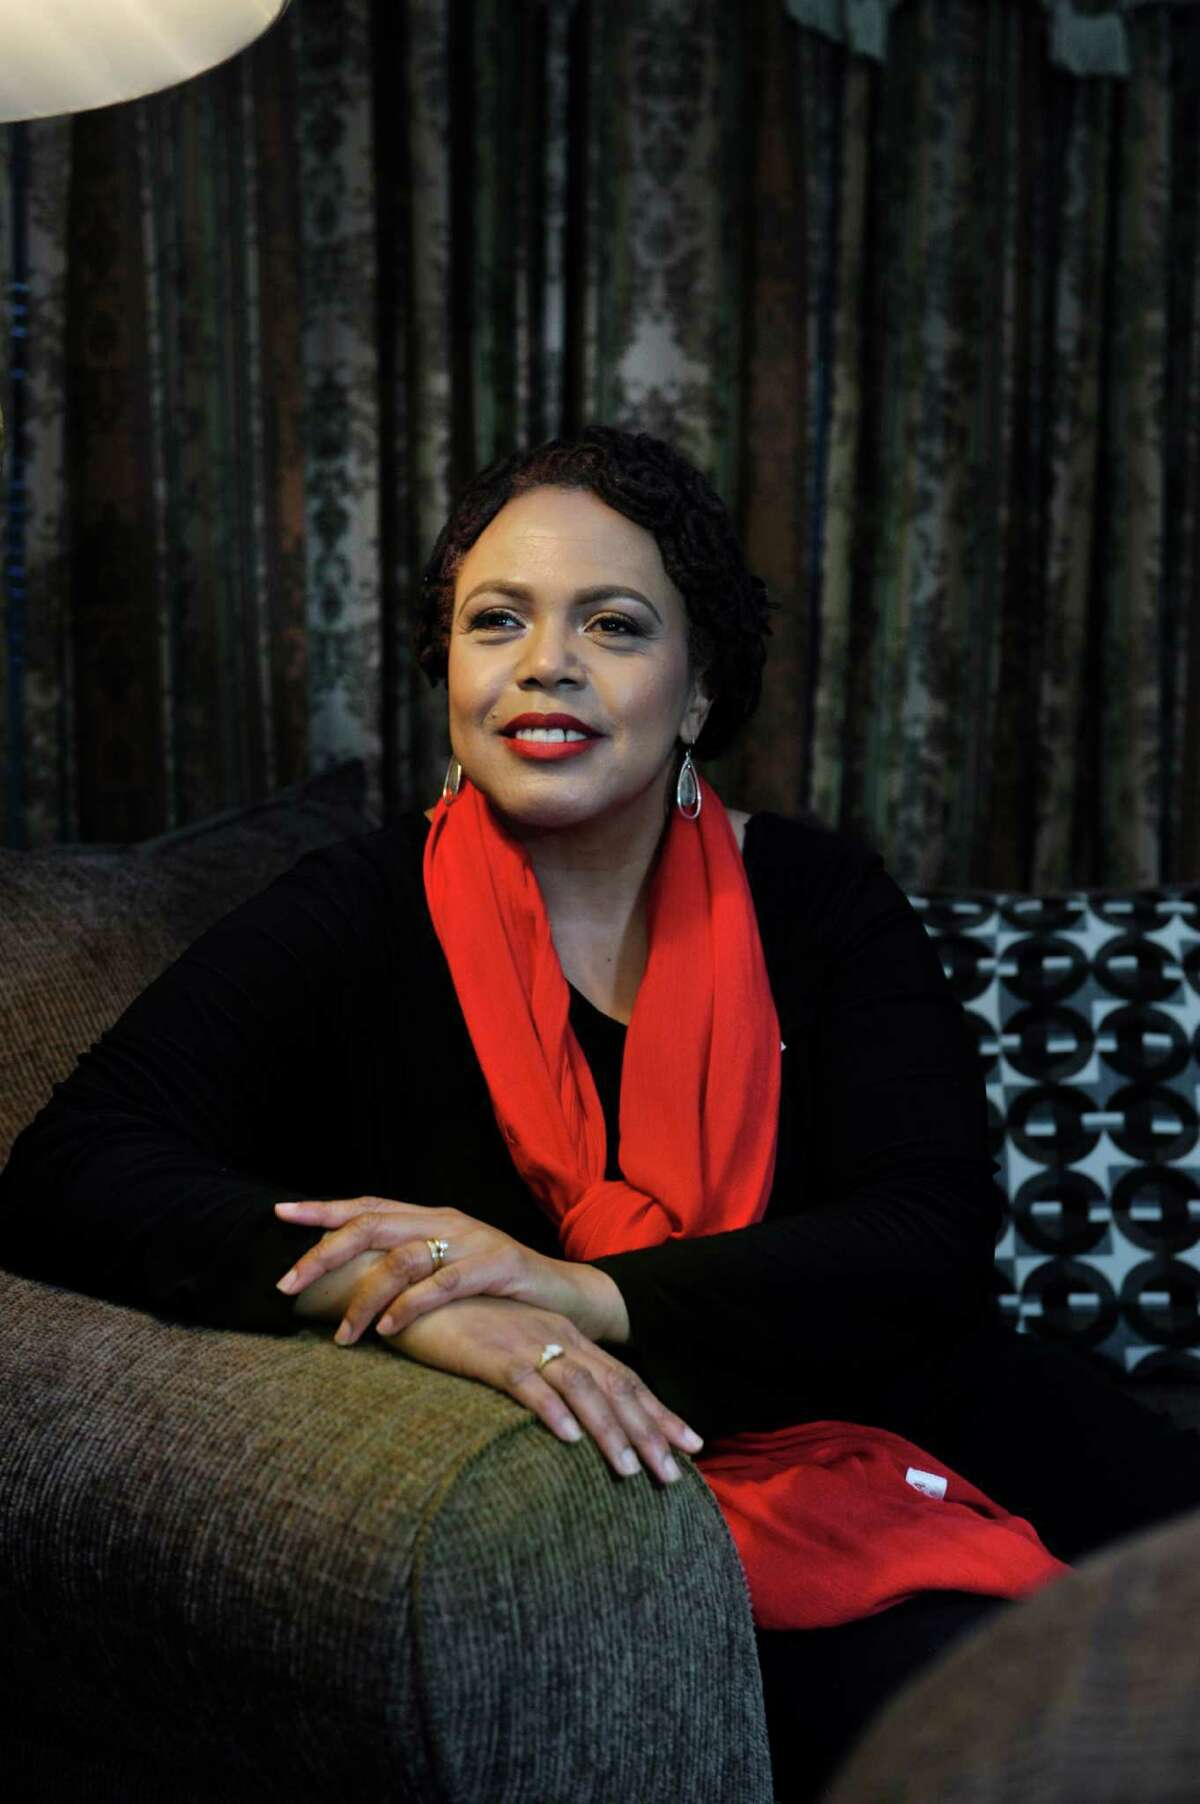 Barbara Howard poses for a photo at her home on Monday, Feb. 8, 2016, in Albany, N.Y. Howard, an actress and singer, is co-coordinating this year's Gospel Gala at the Palace. (Paul Buckowski / Times Union)